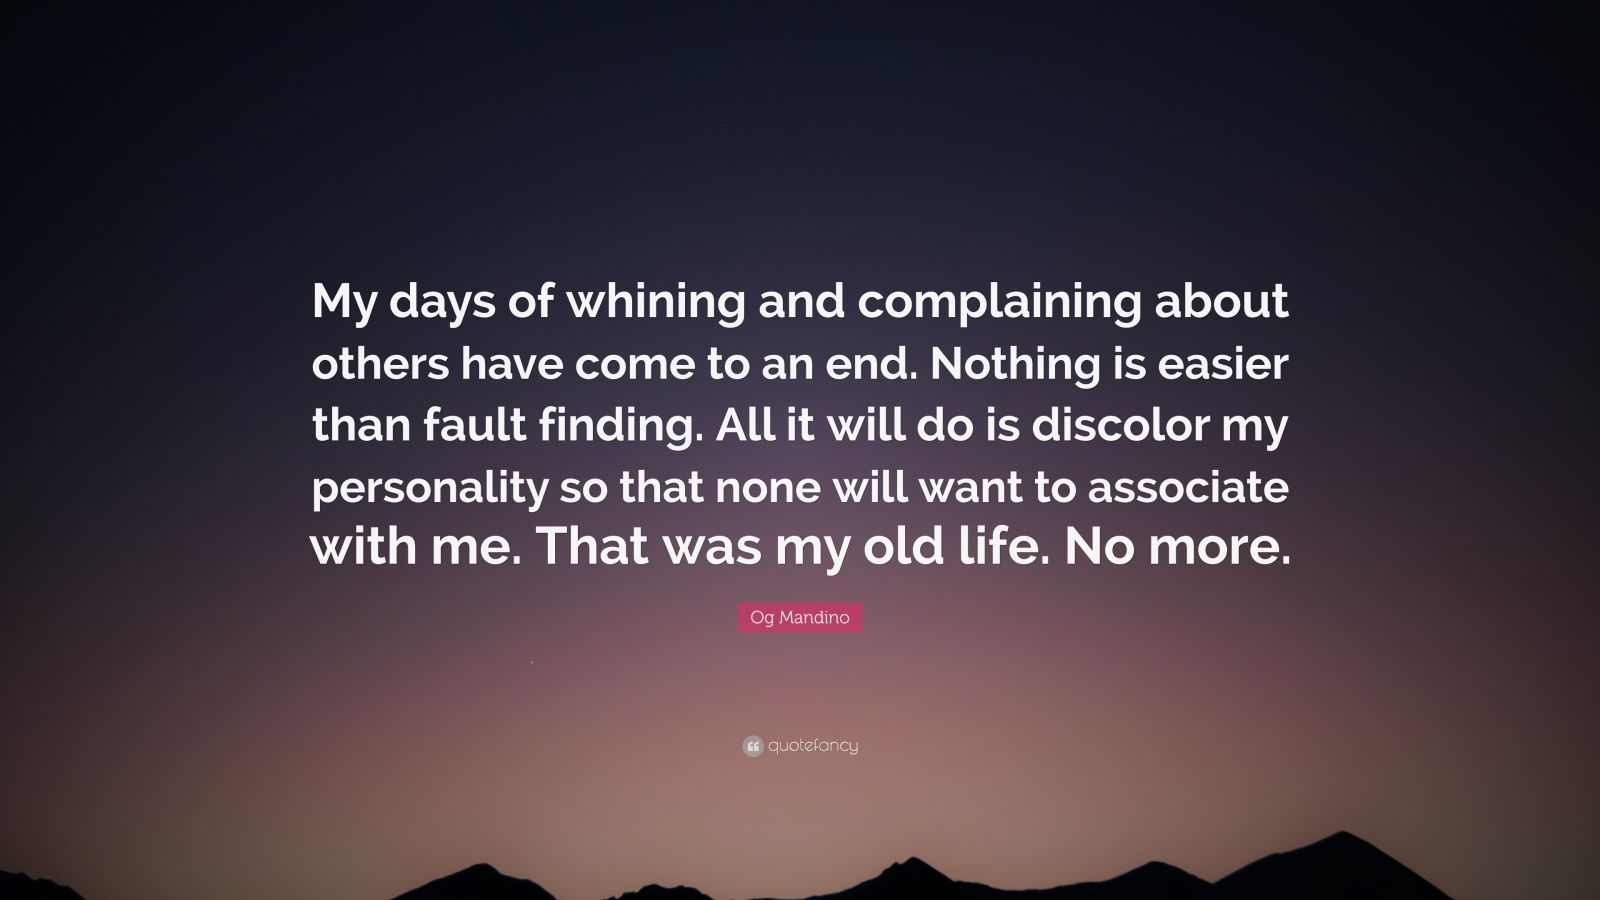 """Og Mandino Quote: """"My days of whining and complaining about others have come to an end. Nothing is easier than fault finding. All it will do is discolor my personality so that none will want to associate with me. That was my old life. No more."""""""